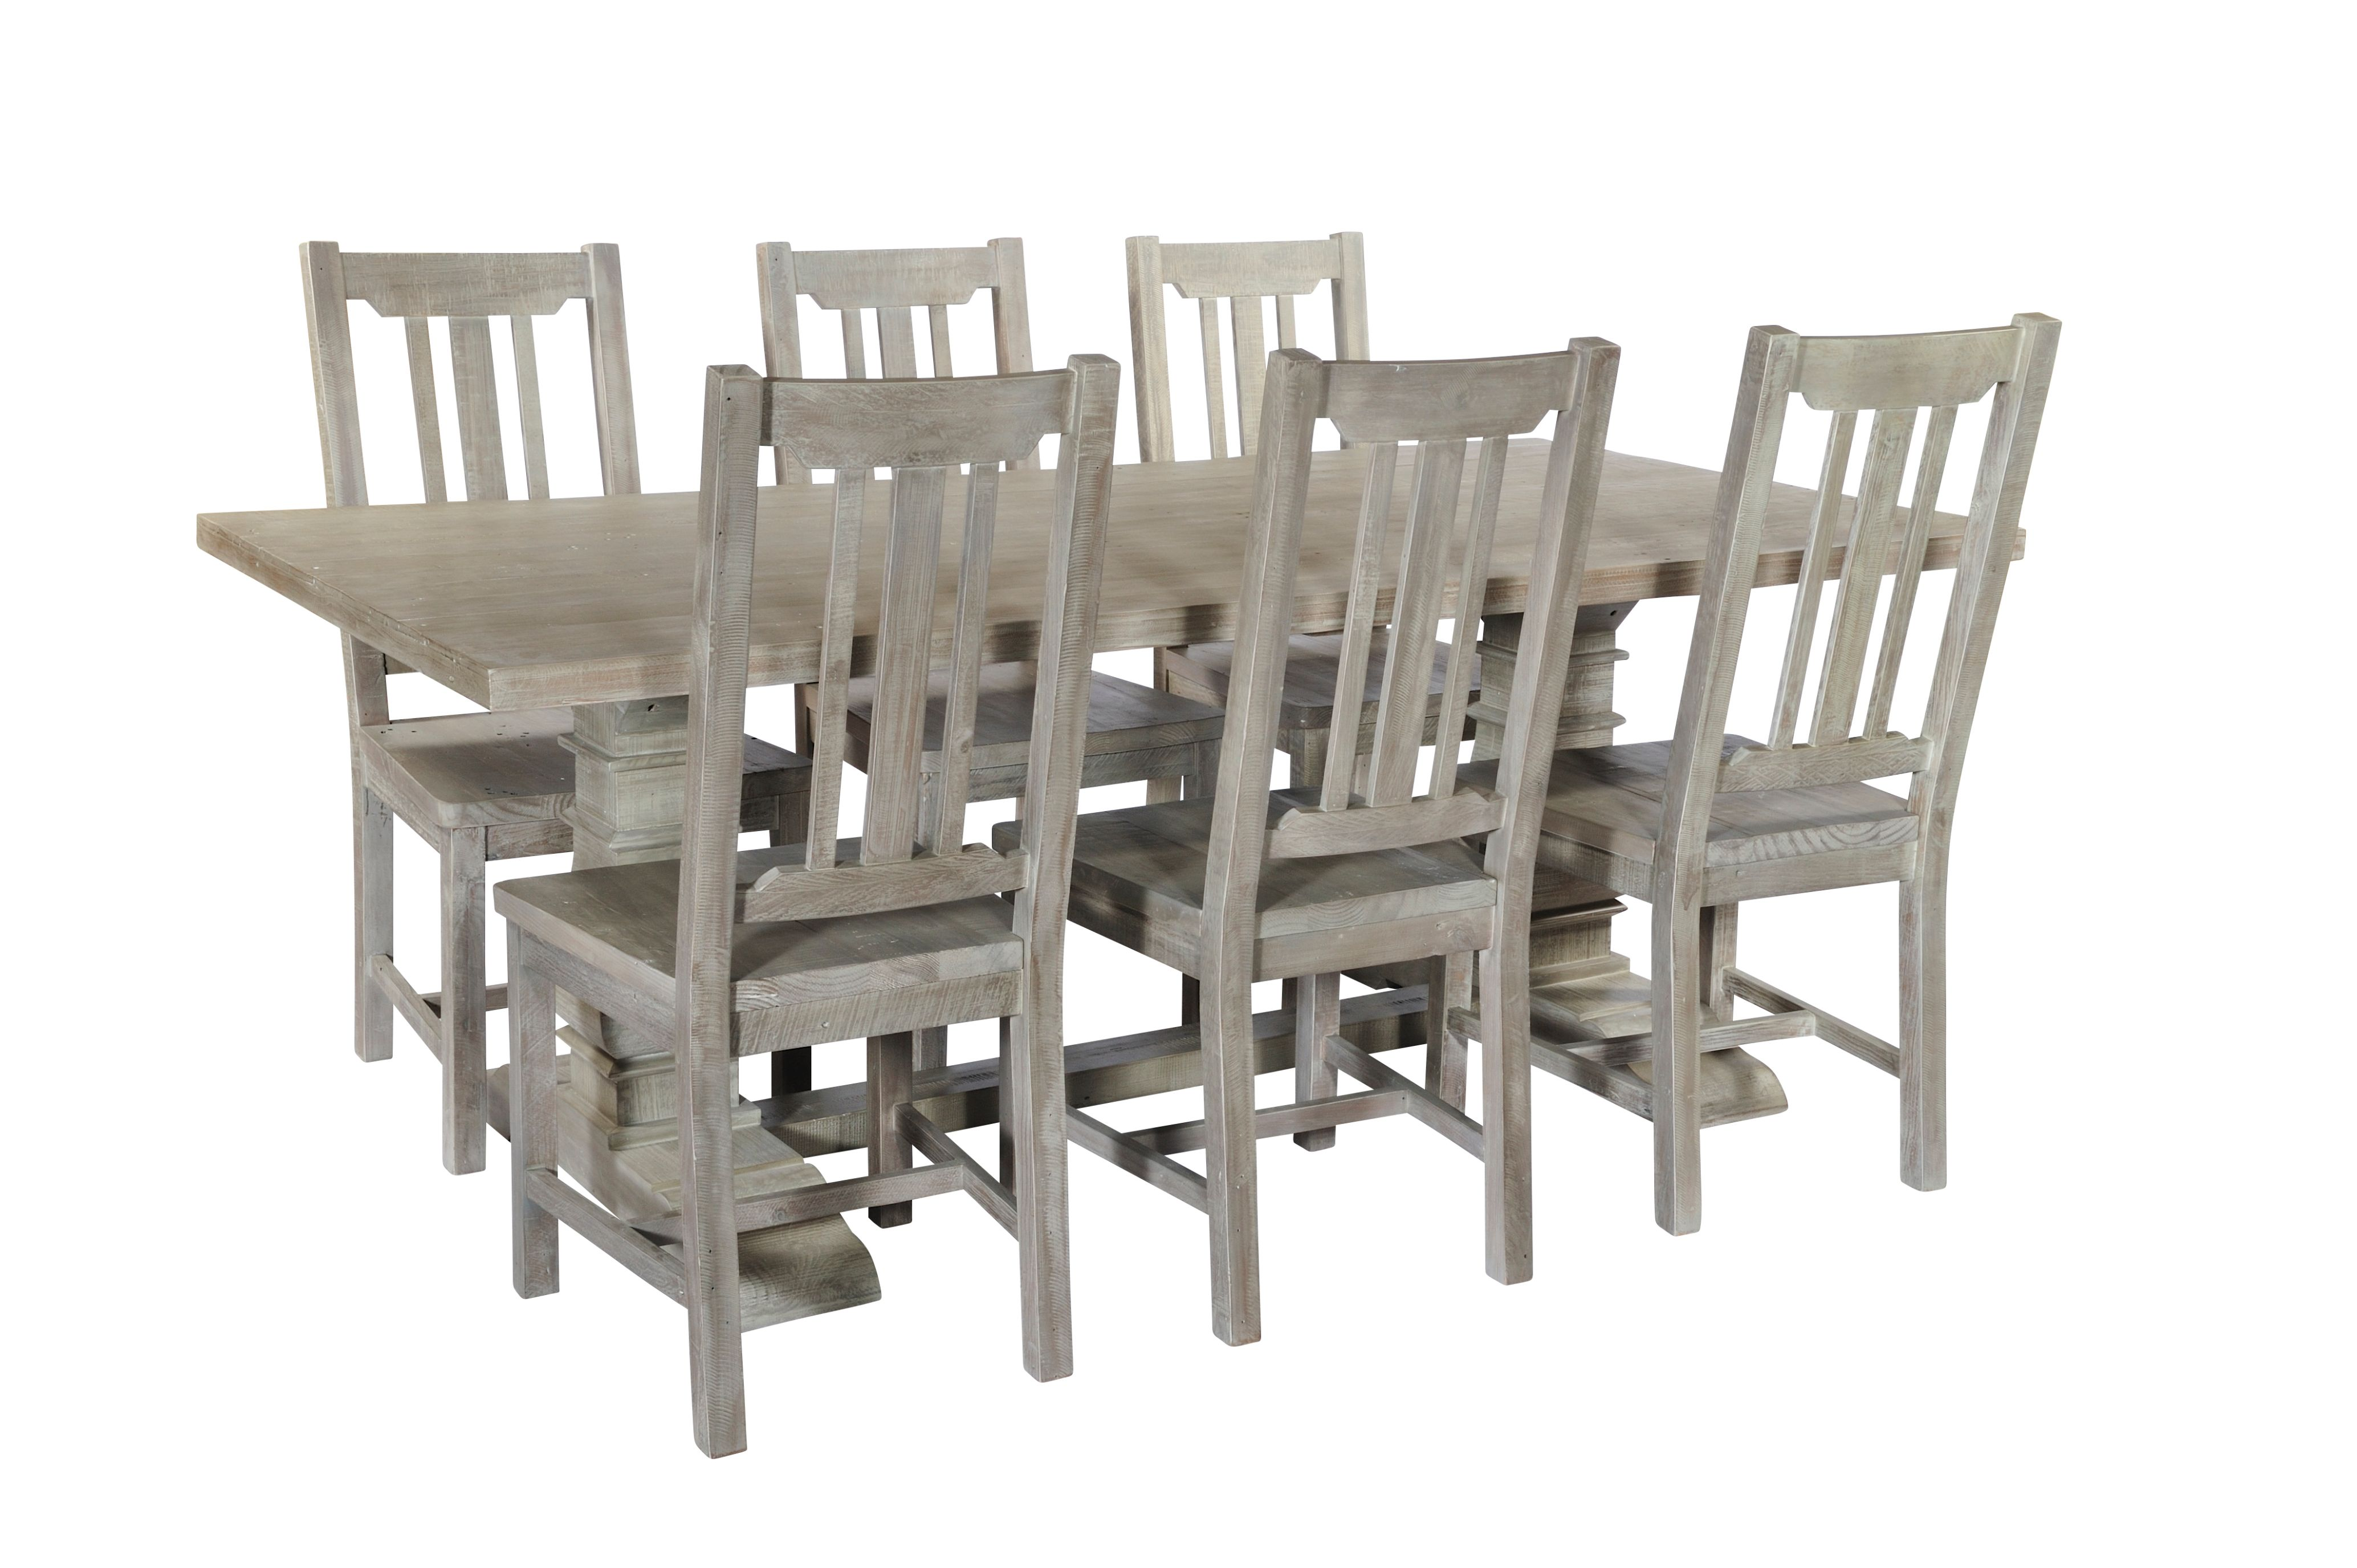 BROUGHTON DINING CHAIR In Lime-washed Timber